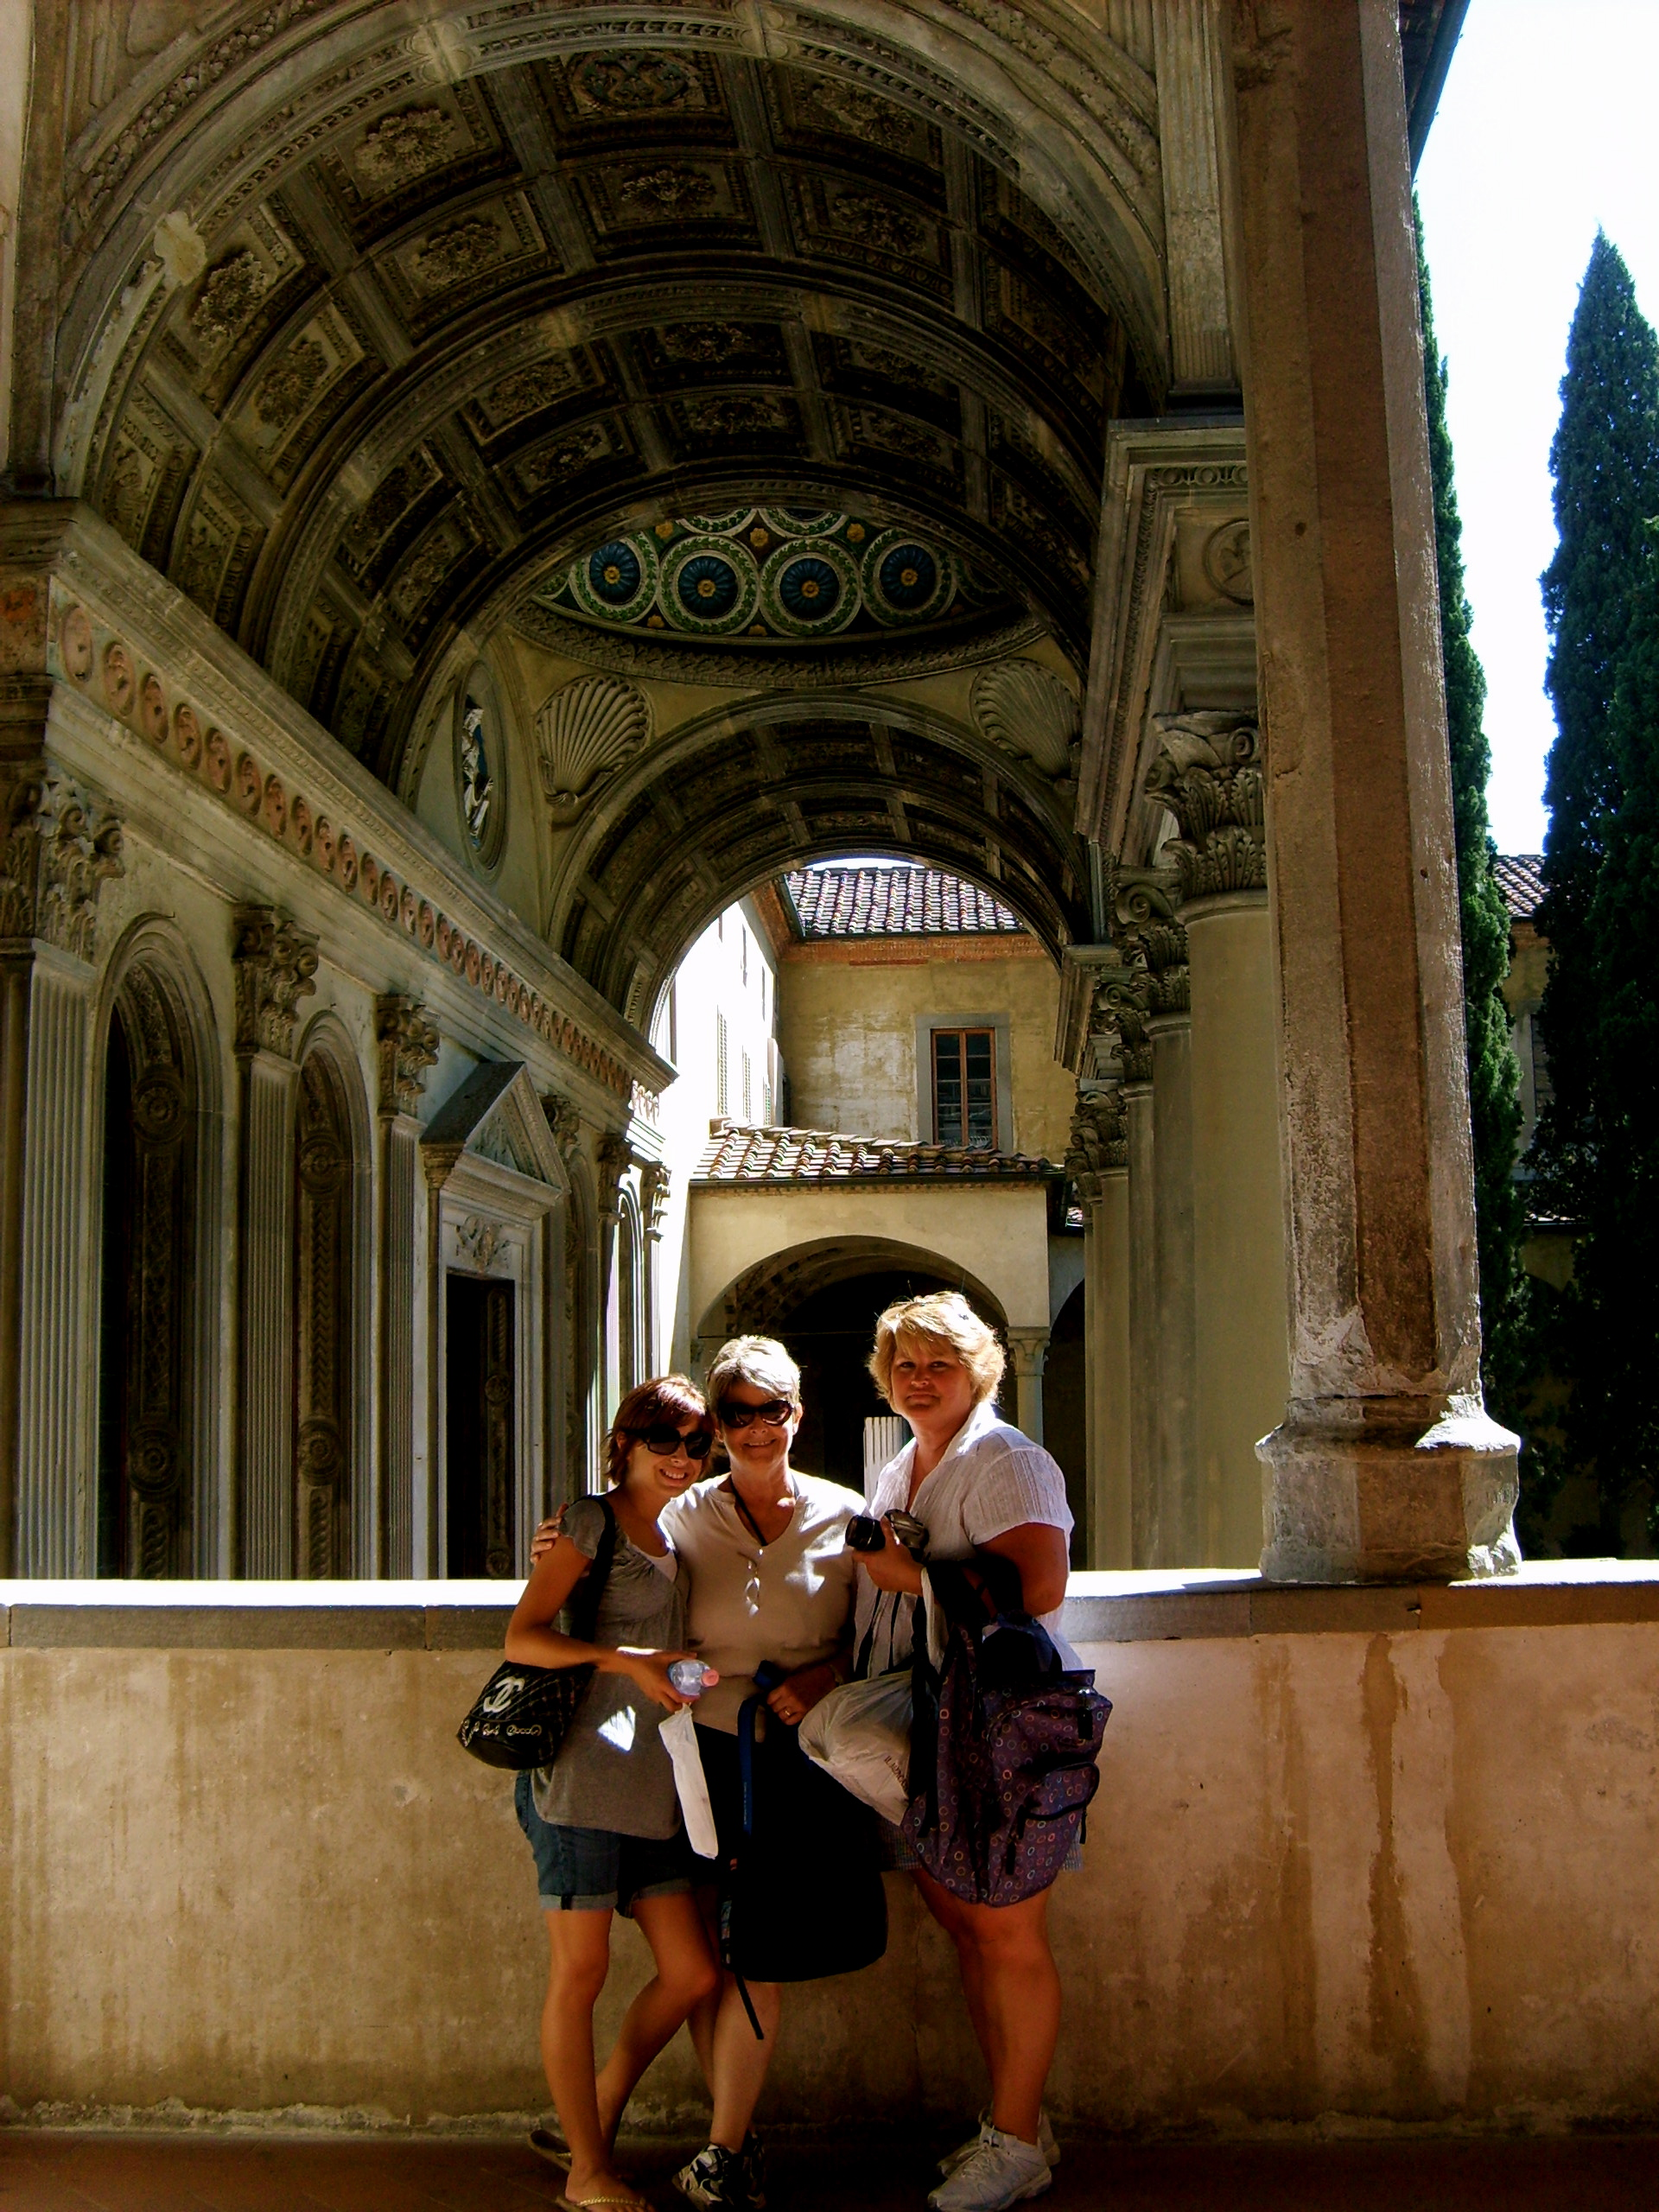 Courtyard of Santa Croce